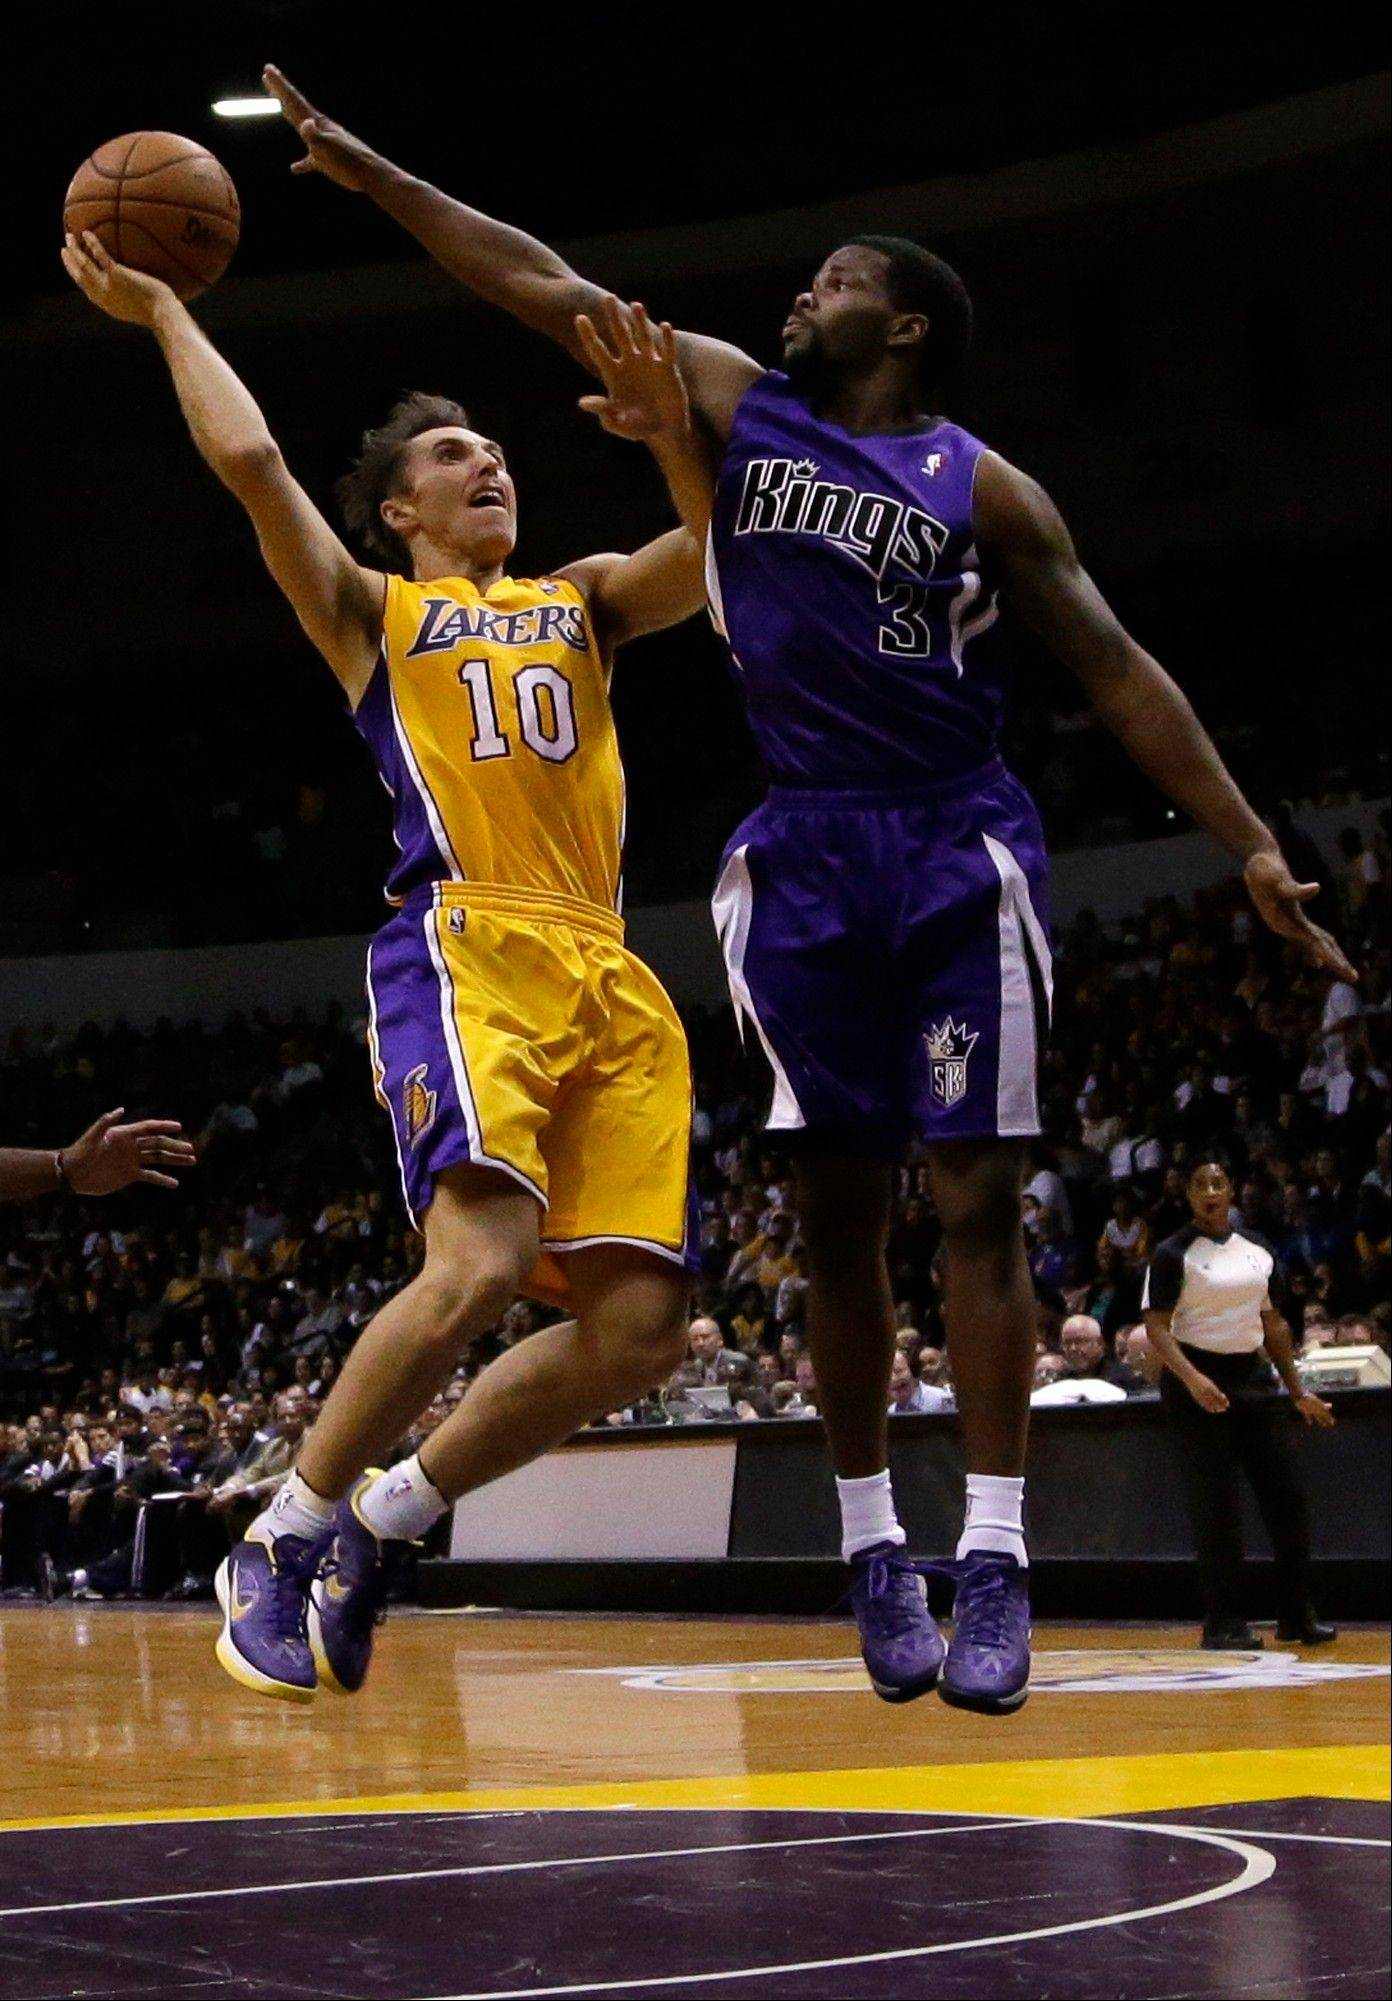 Los Angeles Lakers point guard Steve Nash, left, shoots as Sacramento Kings point guard Aaron Brooks defends during a preseason game on Thursday.